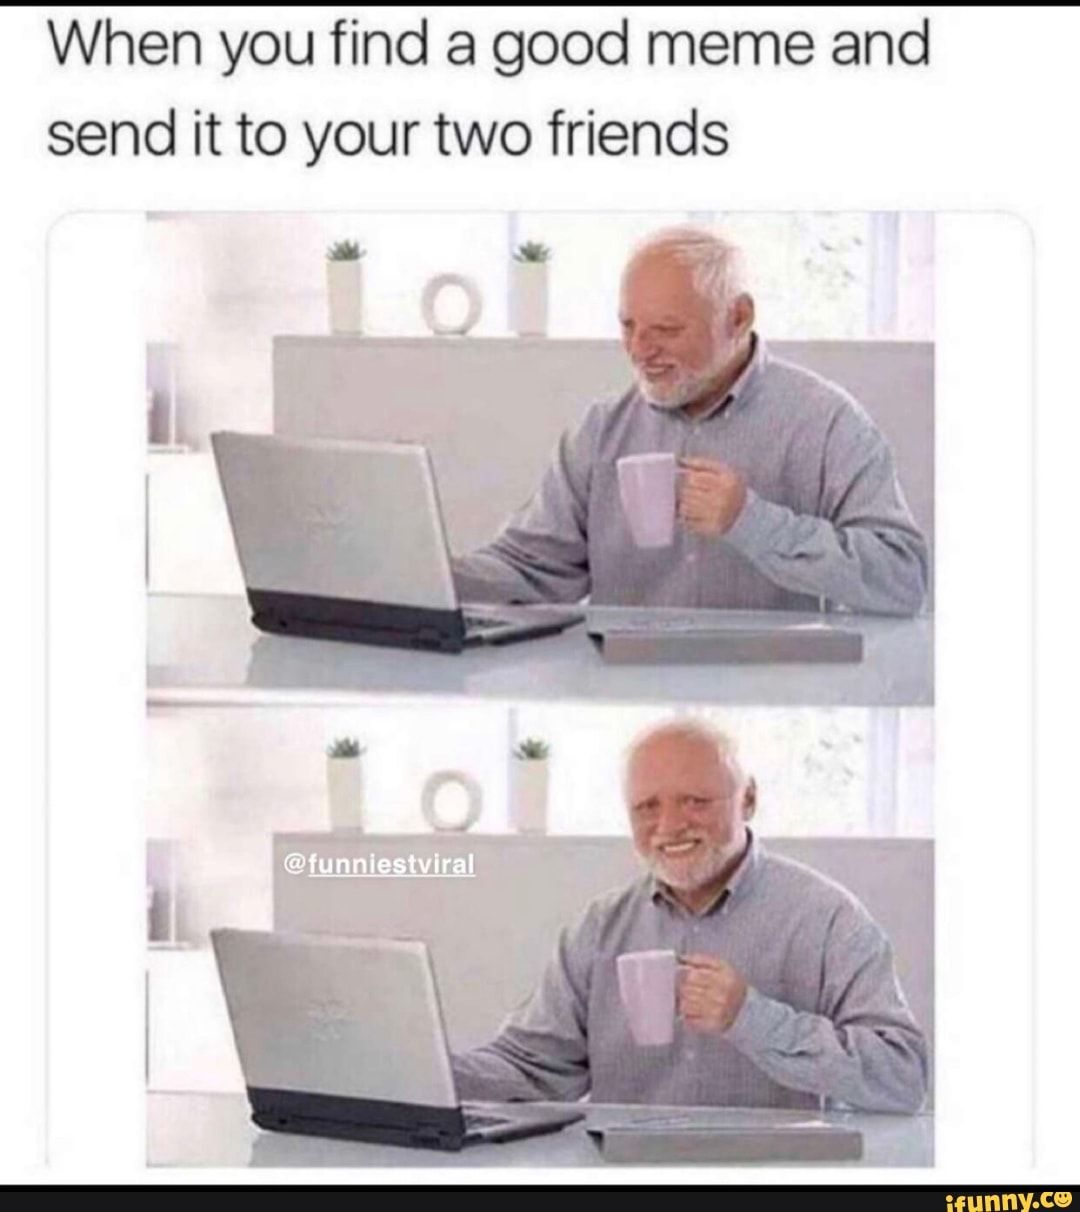 When You Find A Good Meme And Send It To Your Two Friends Ifunny Friends Funny Best Memes Friend Jokes